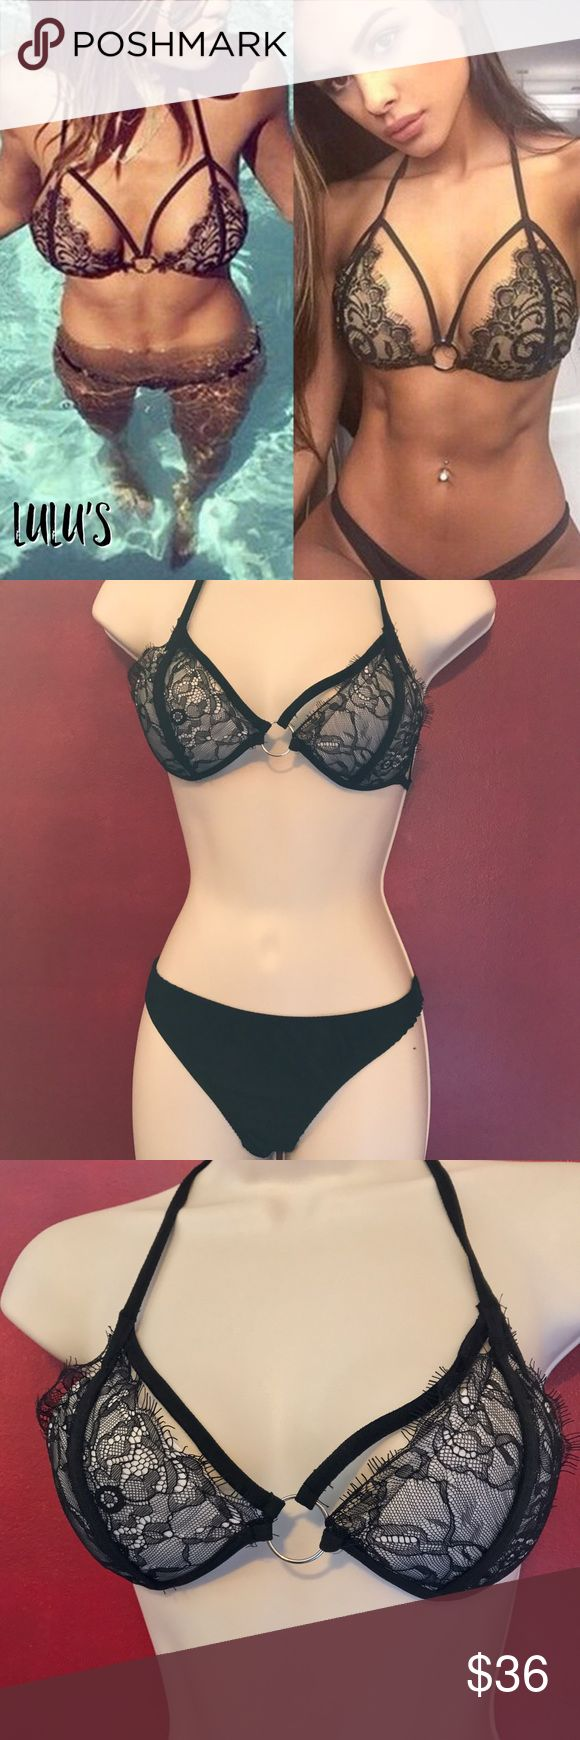 sexy hot bikini  Get ready for summer, sexy hot bakini, hot black lace, the top has underwires and is padded to give the  push-up appearance, the top ties around the back and around the neck for added comfort, this runs true to size, Ask any questions prior to purchase, see last photo for sizing Made of acrylic         ♥️offers welcome        ♥️fast shipping         no trades          non smoking               home Item #004 Swim Bikinis